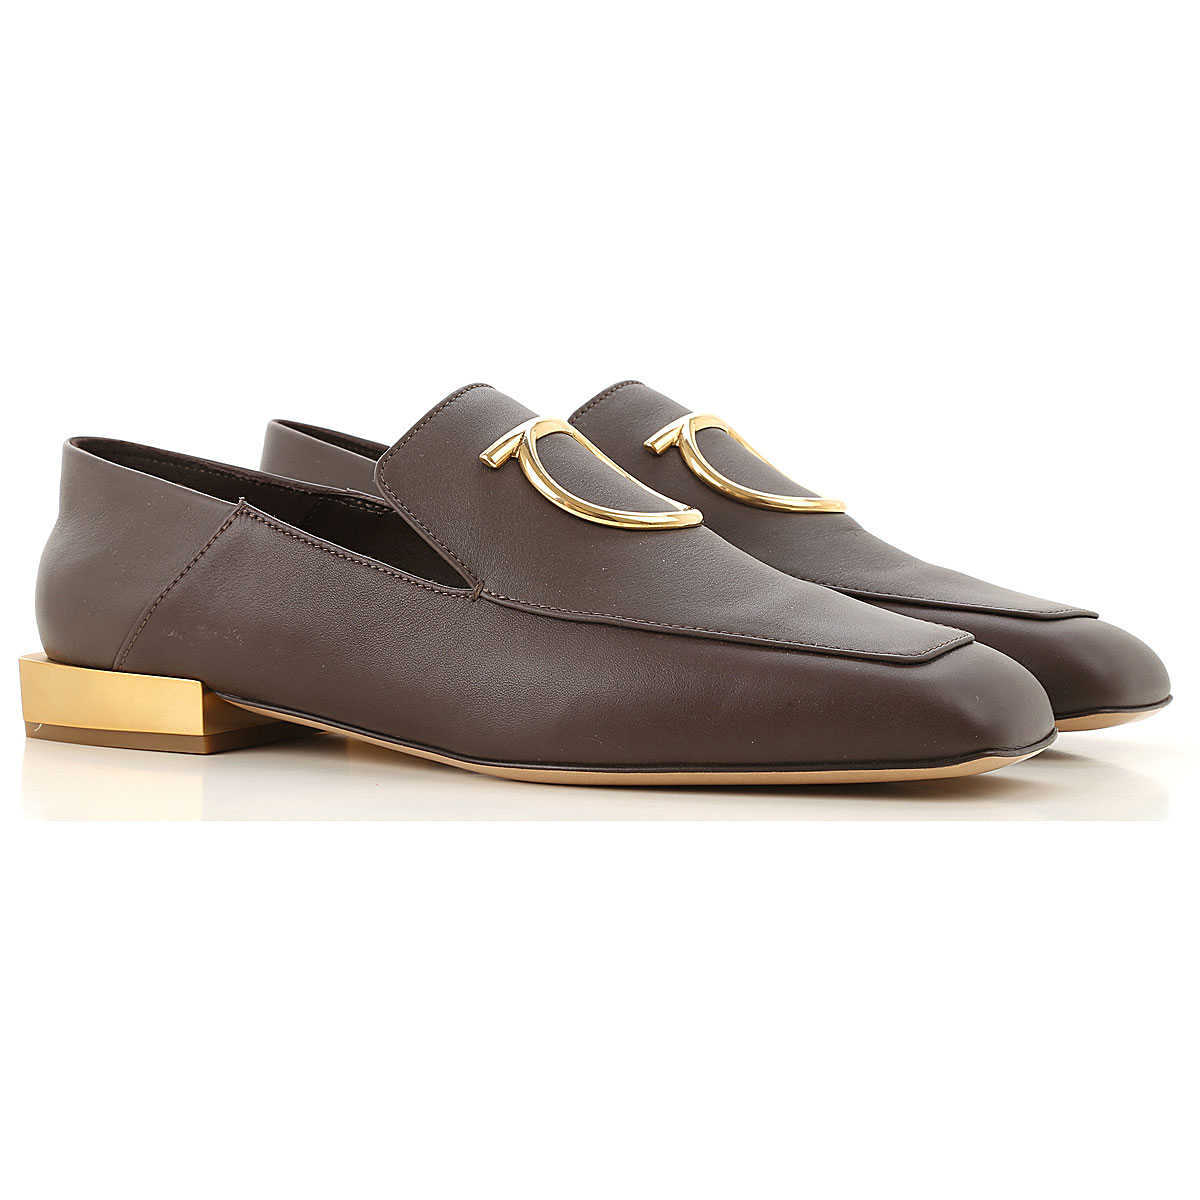 Salvatore Ferragamo Loafers for Women Chocolate DK - GOOFASH - Womens FLAT SHOES